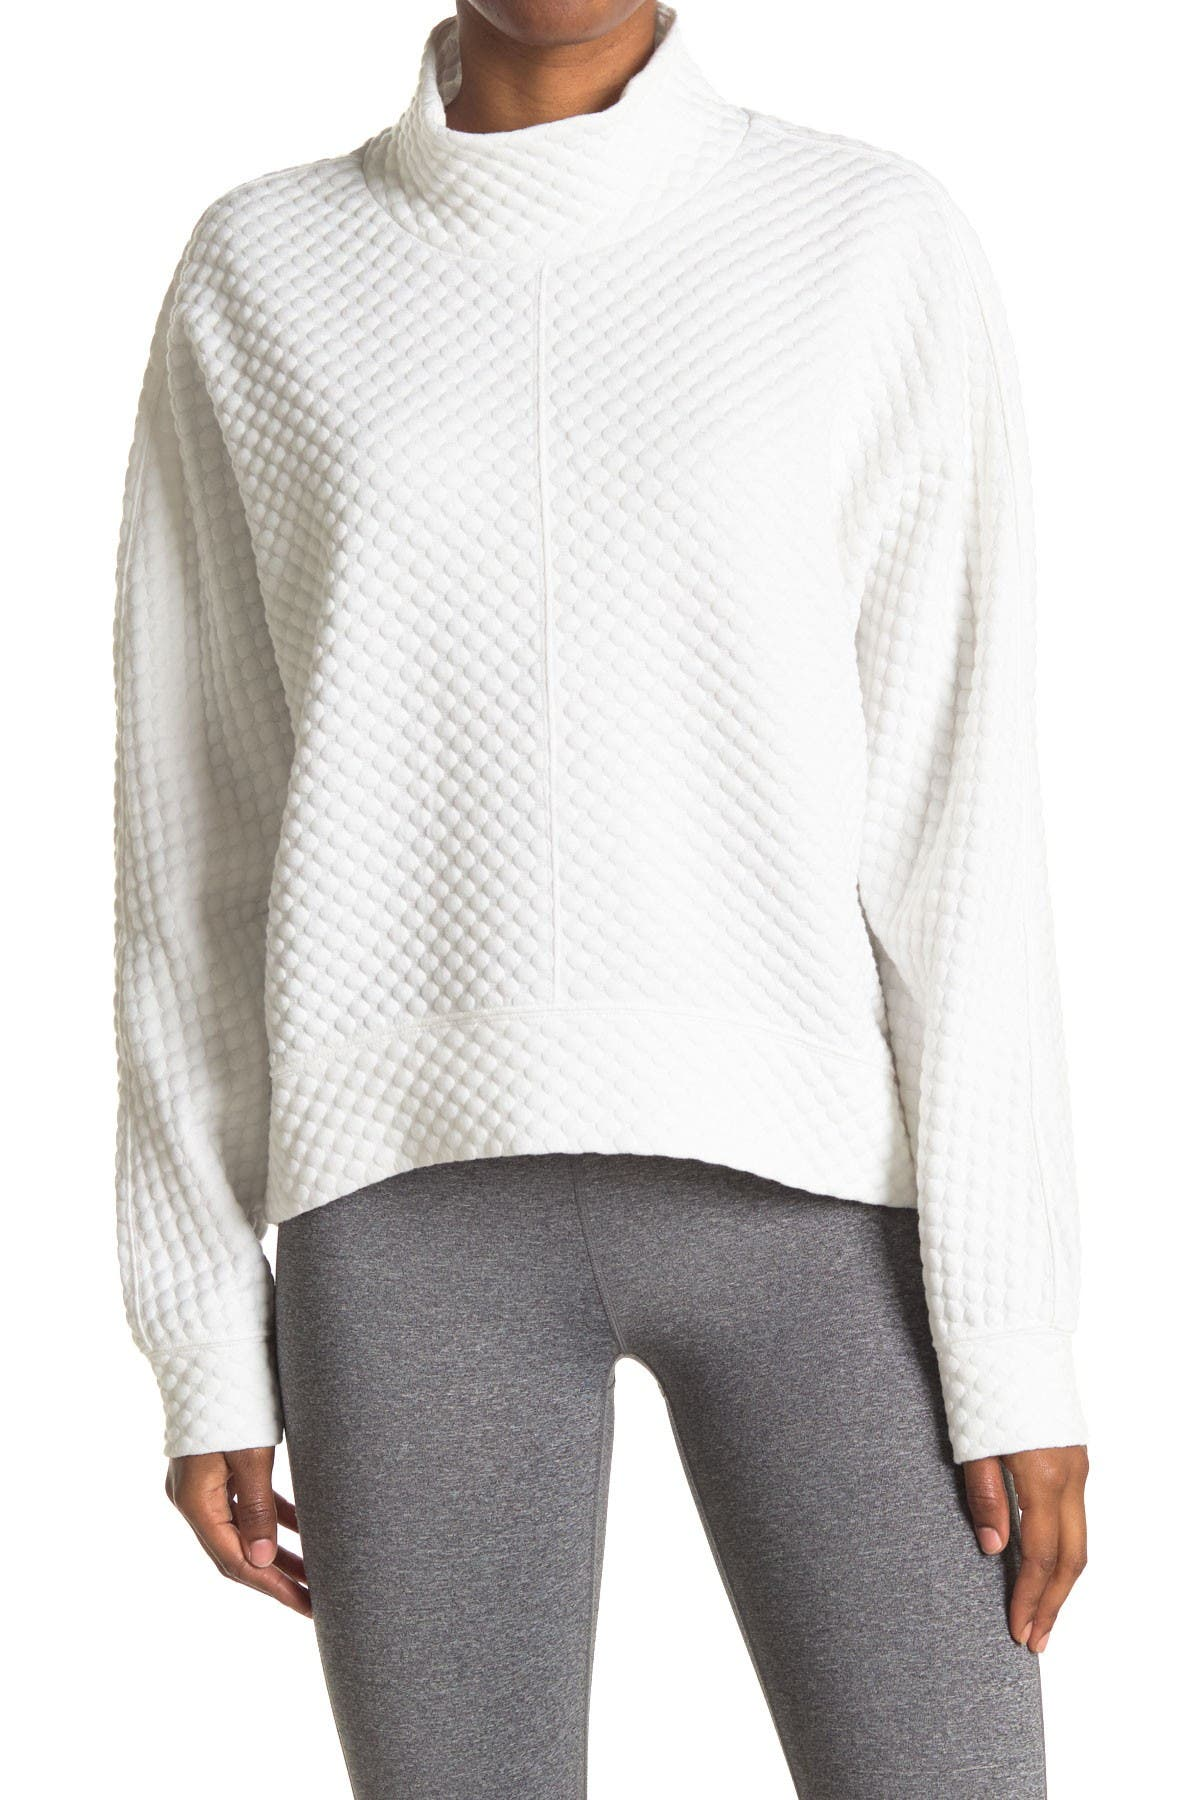 Image of Z By Zella Ivy Textured Mock Neck Sweater